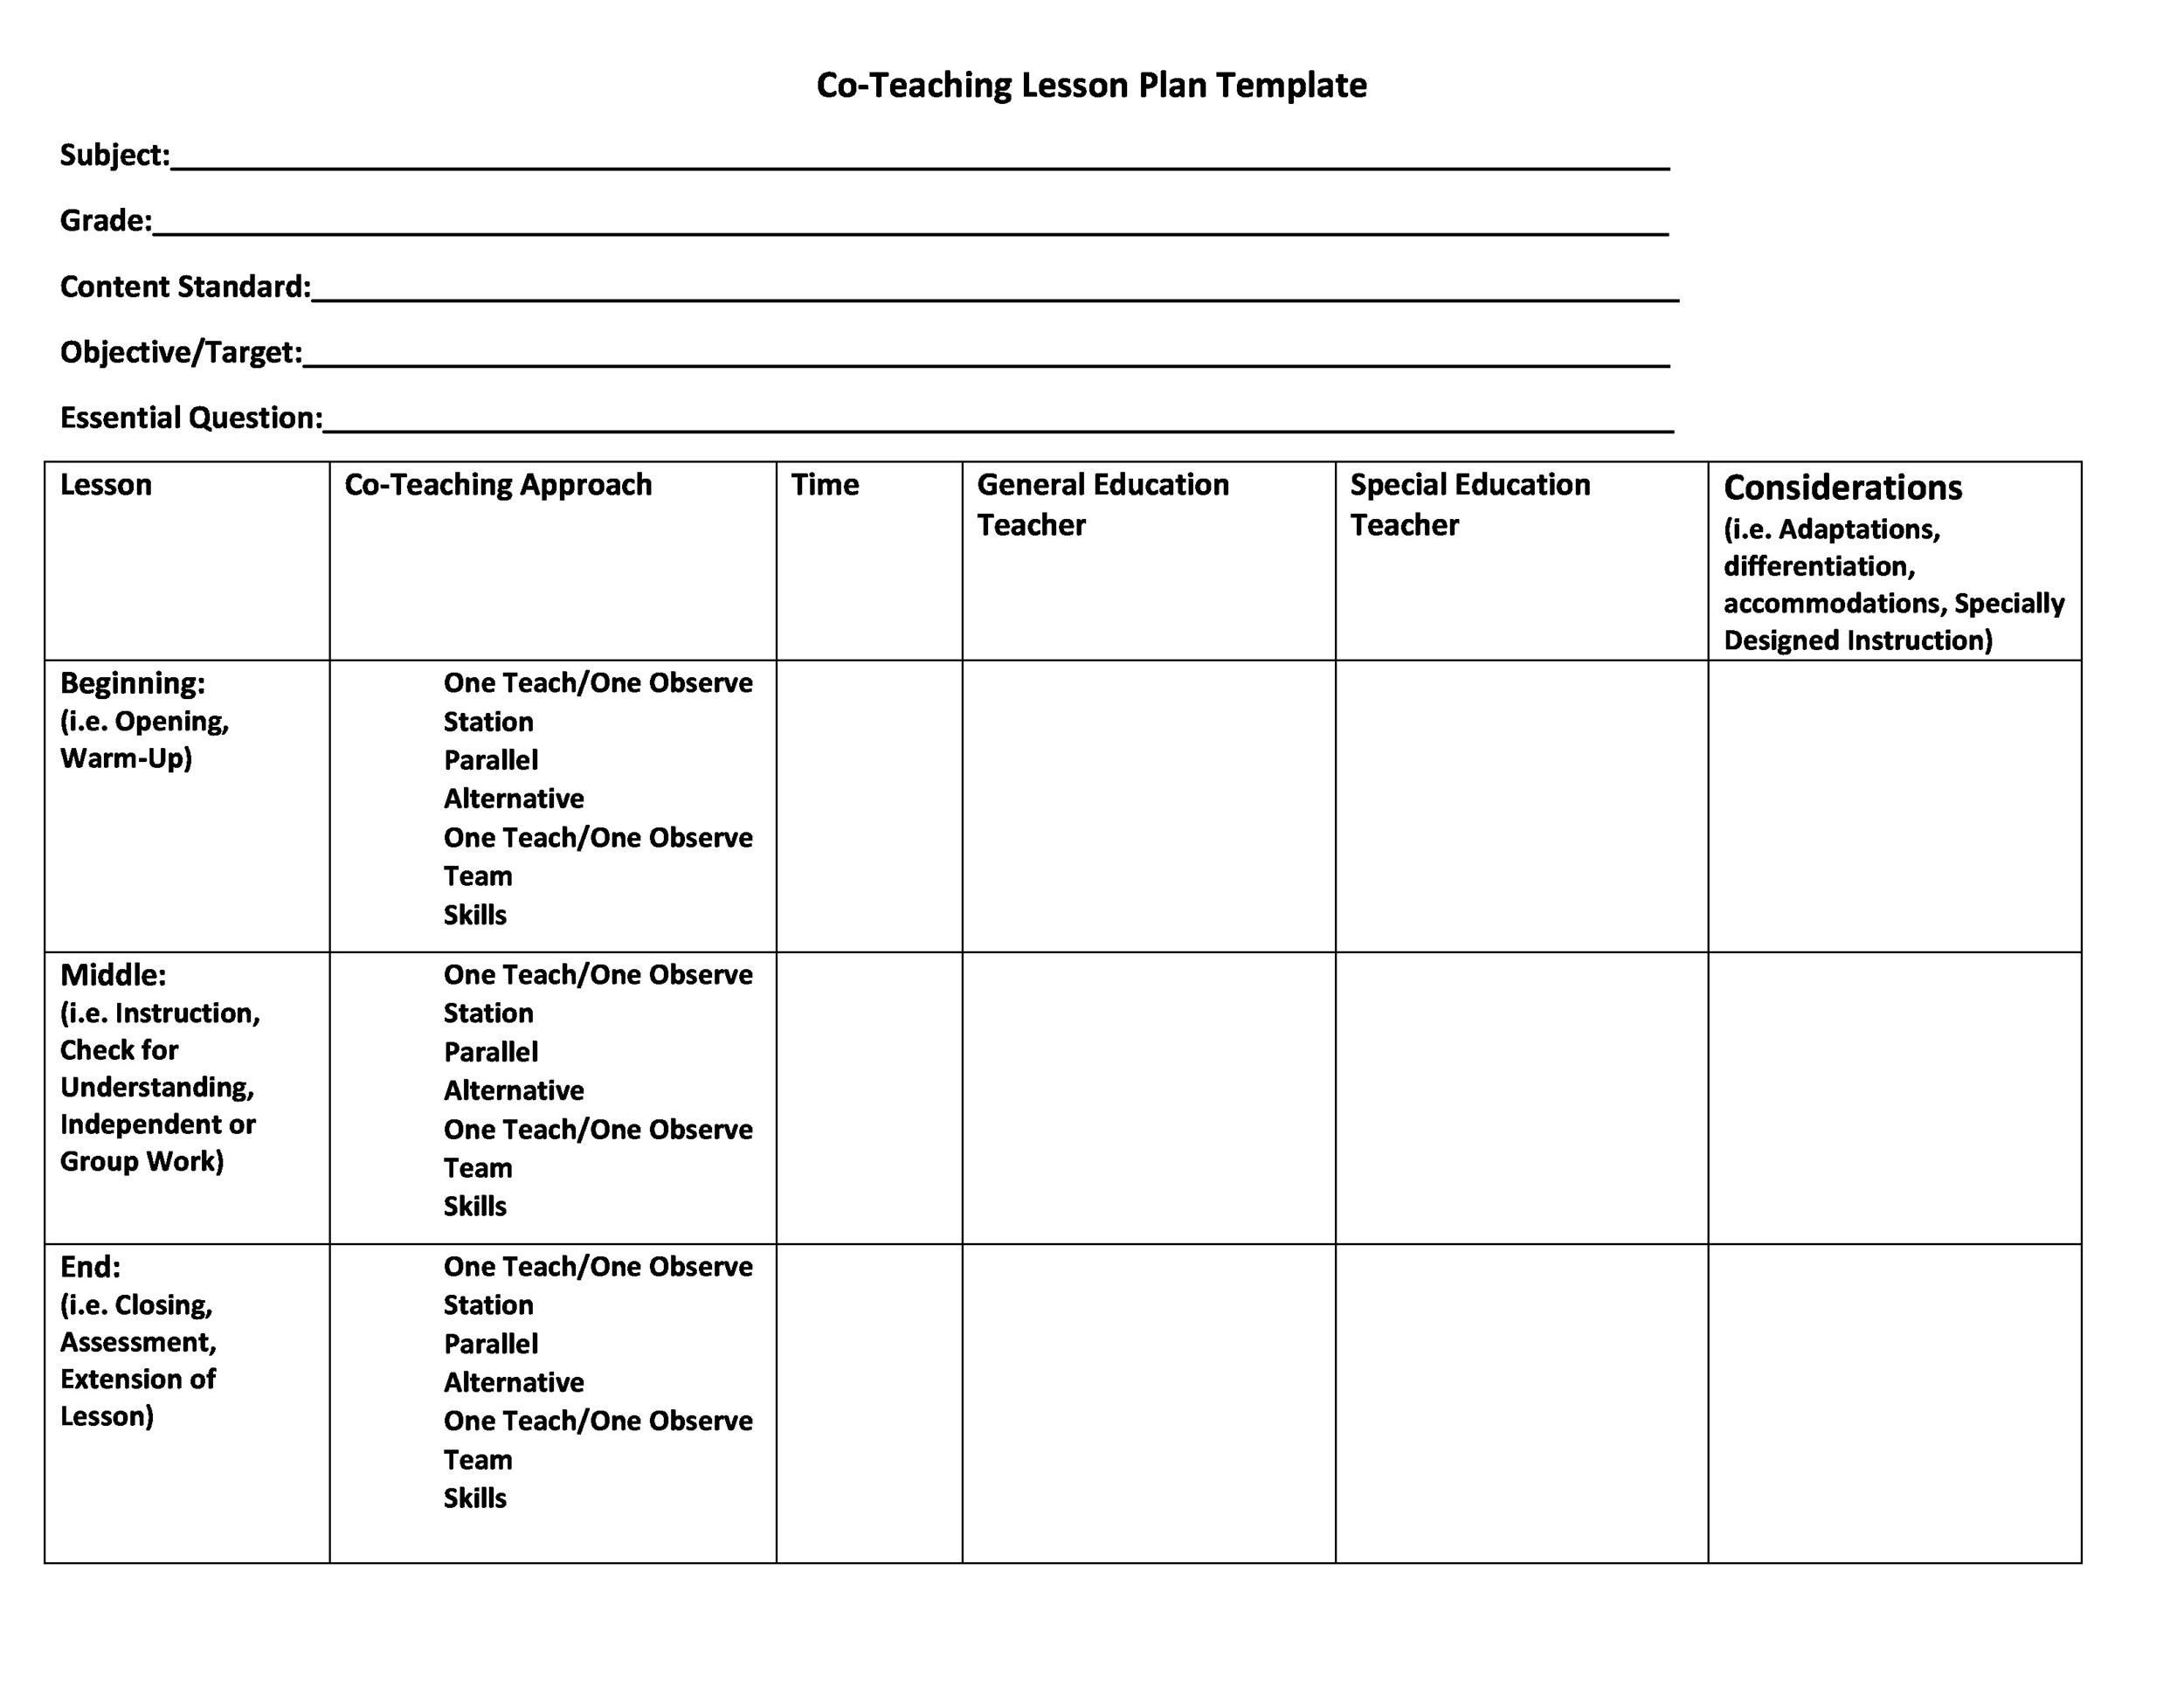 44 FREE Lesson Plan Templates Common Core, Preschool, Weekly - preschool lesson plan